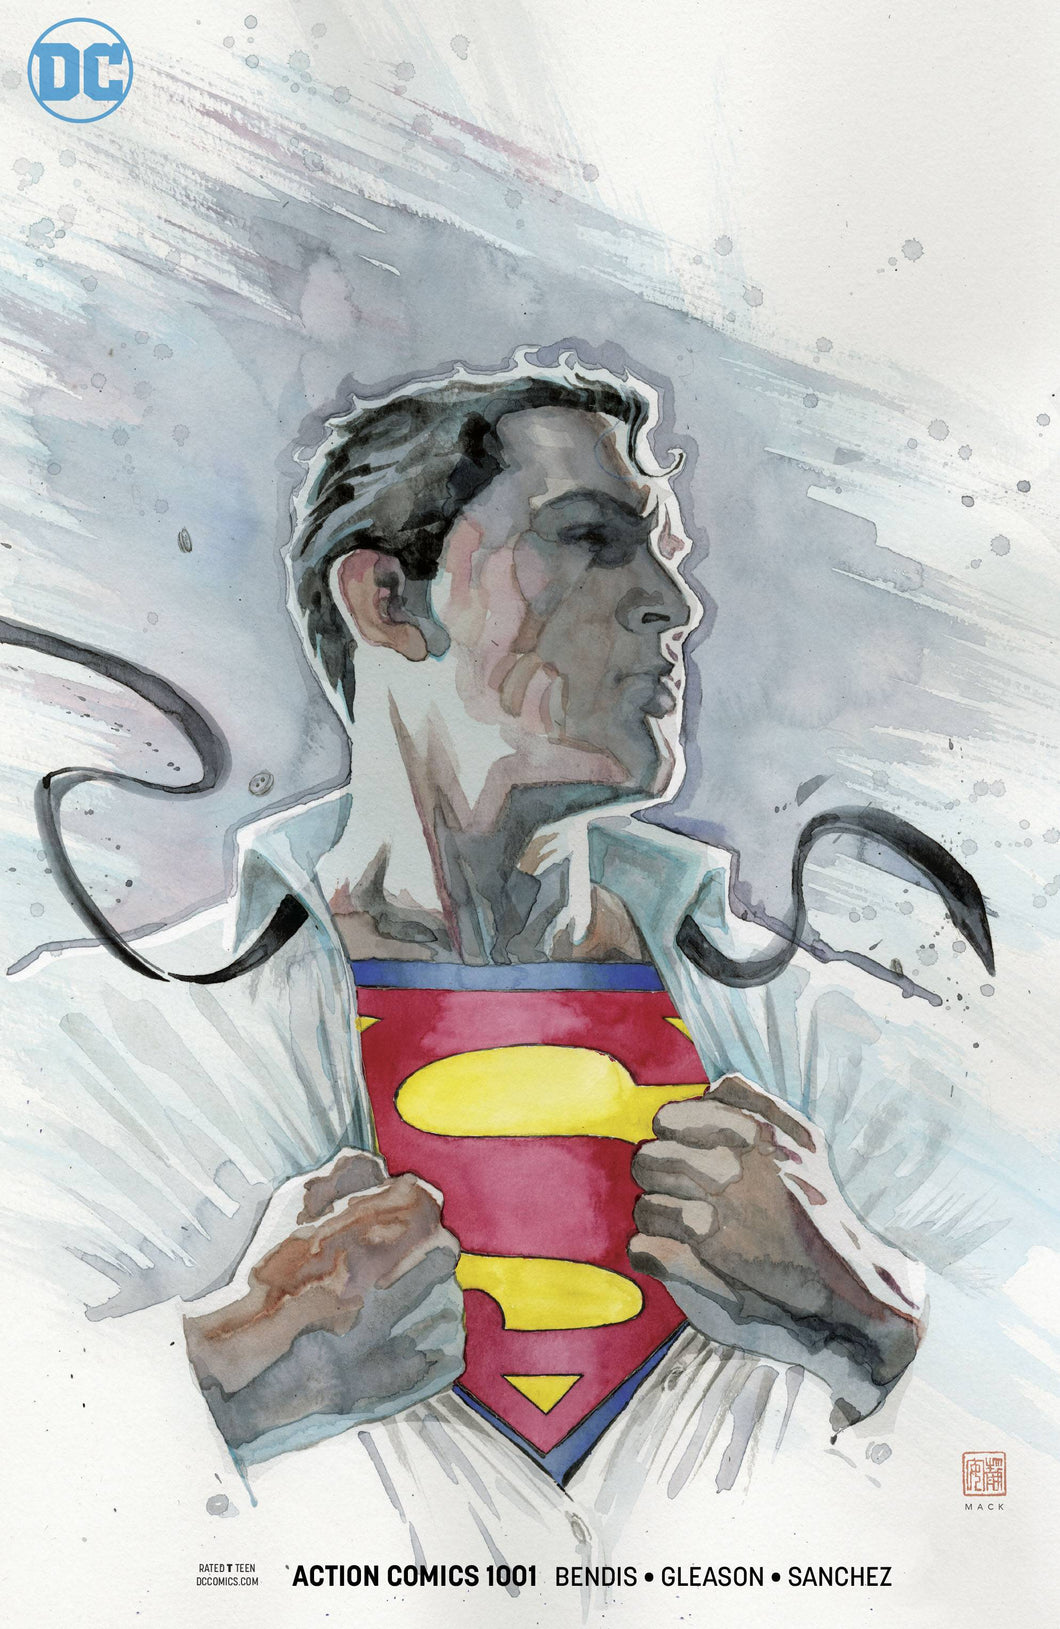 ACTION COMICS #1001 MACK VAR ED (07/25/2018)